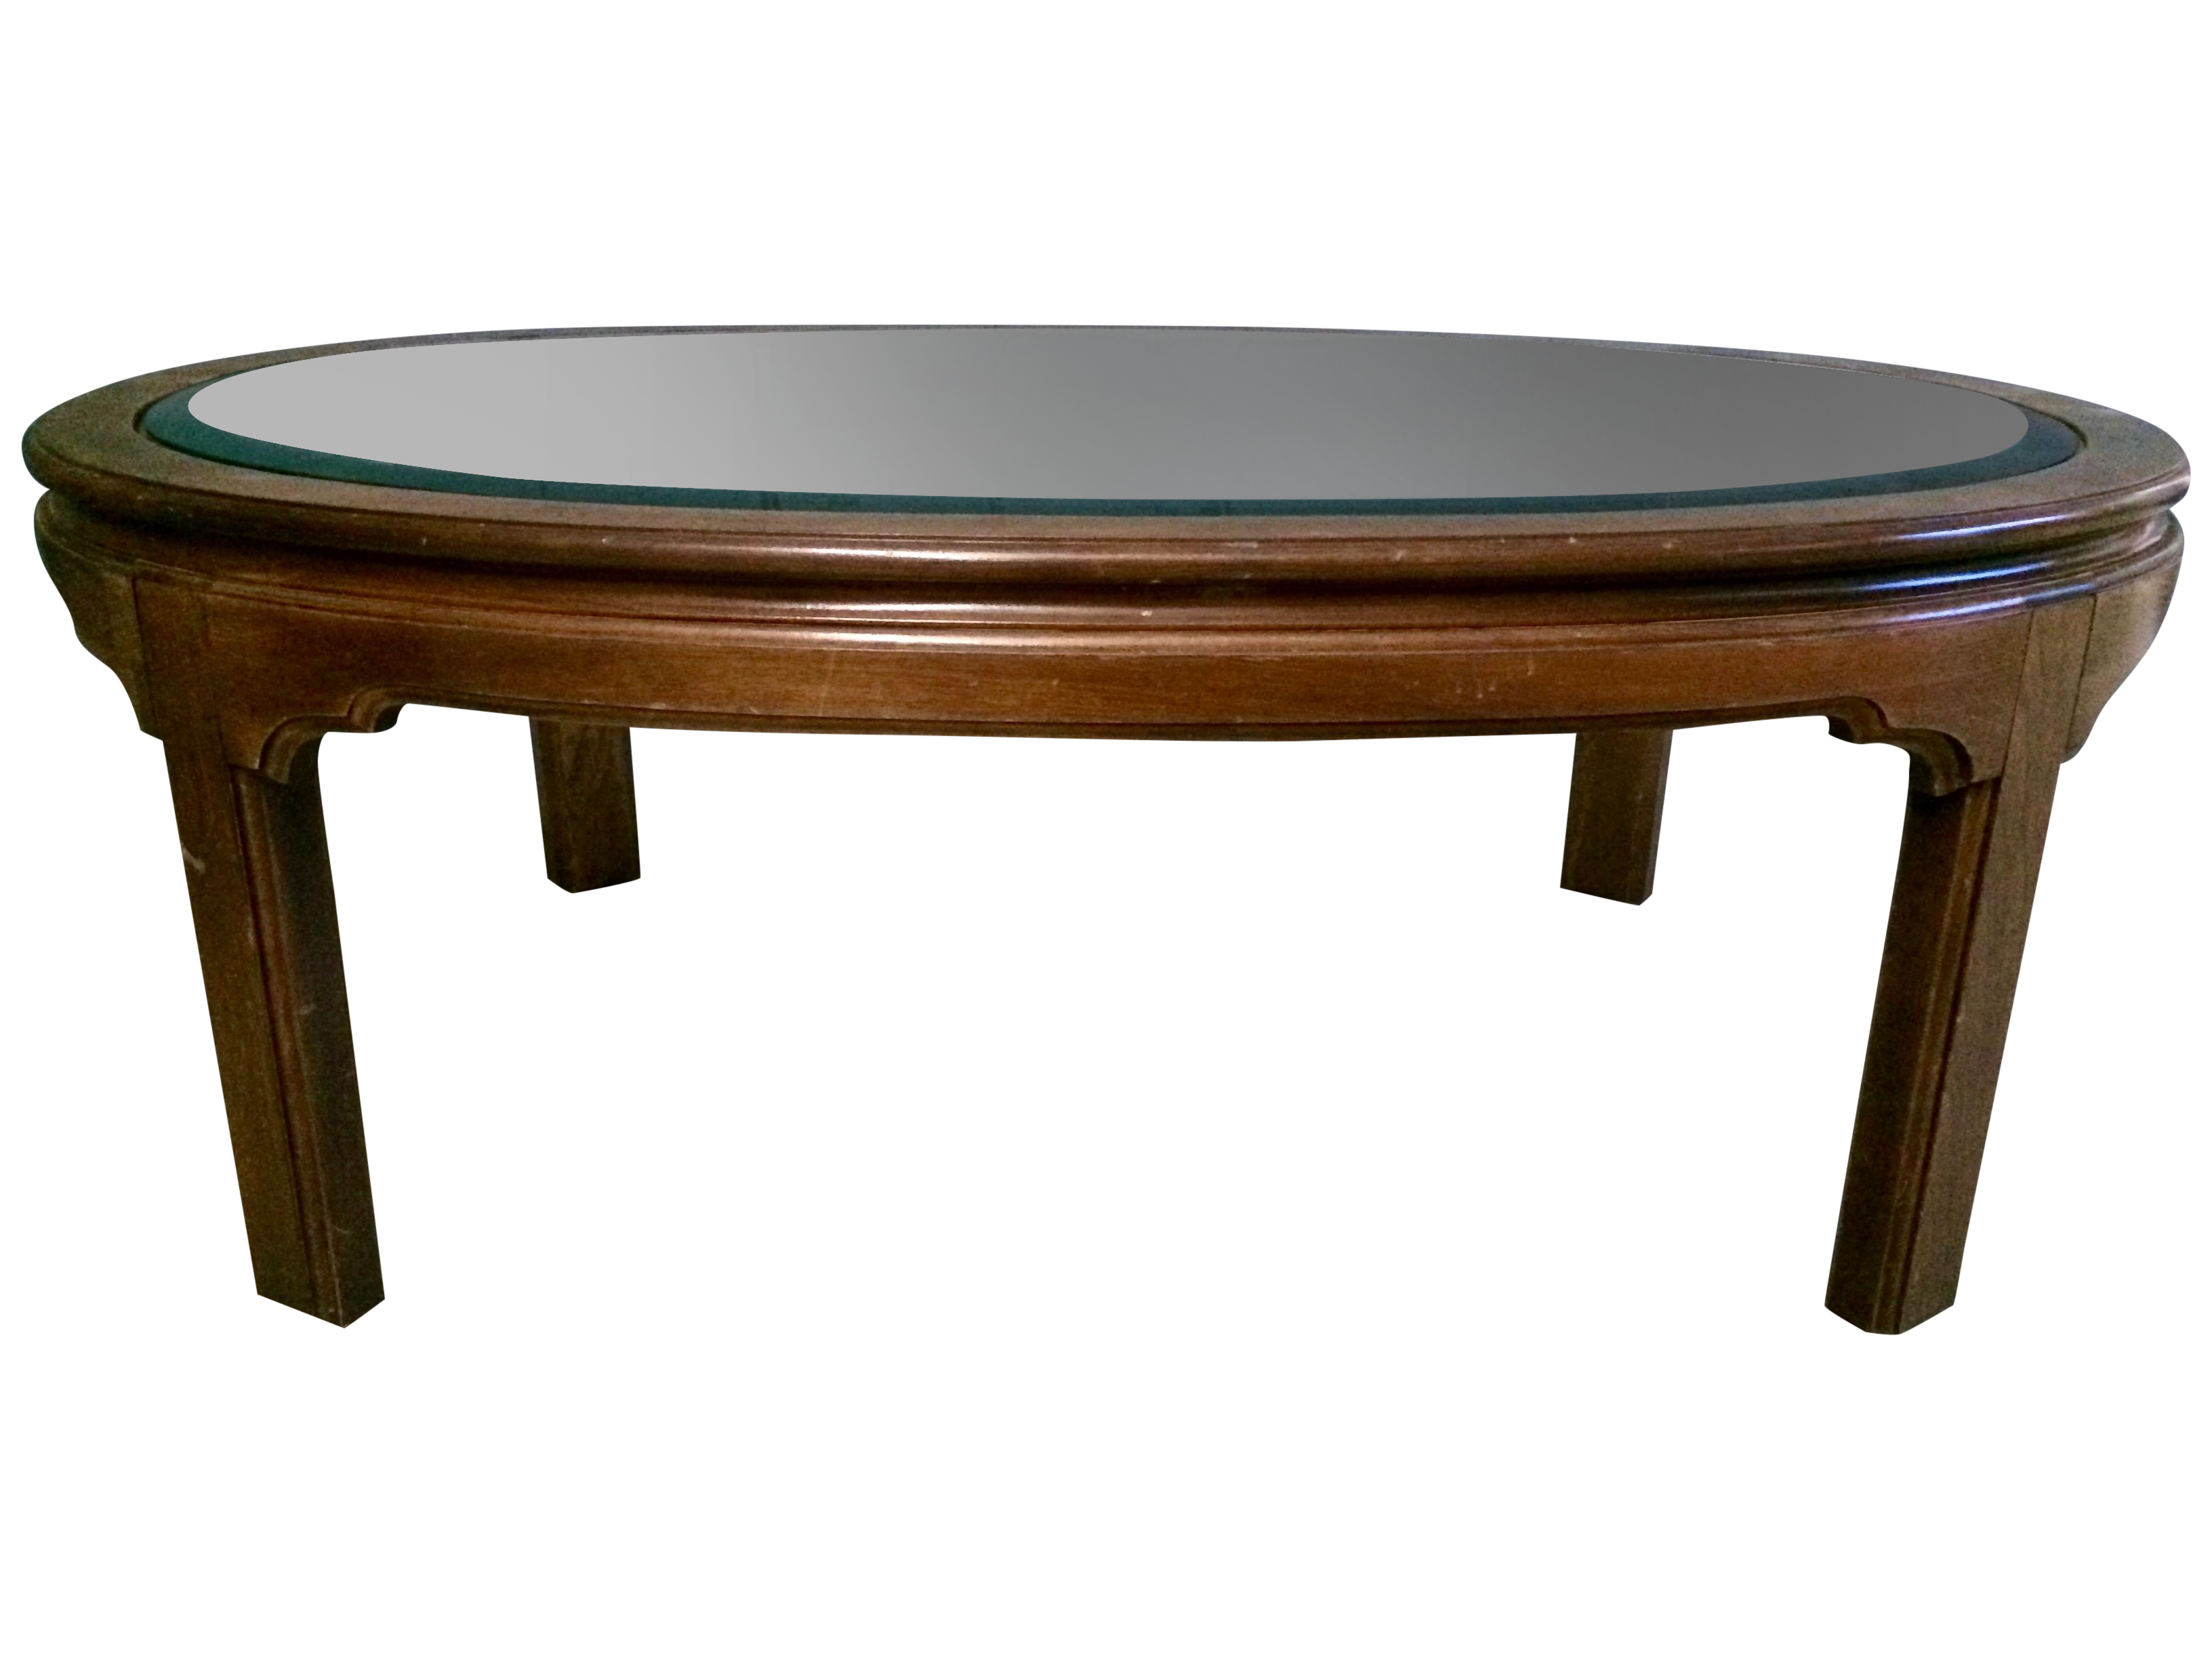 vintage large oval wood glass coffee table chairish. Black Bedroom Furniture Sets. Home Design Ideas